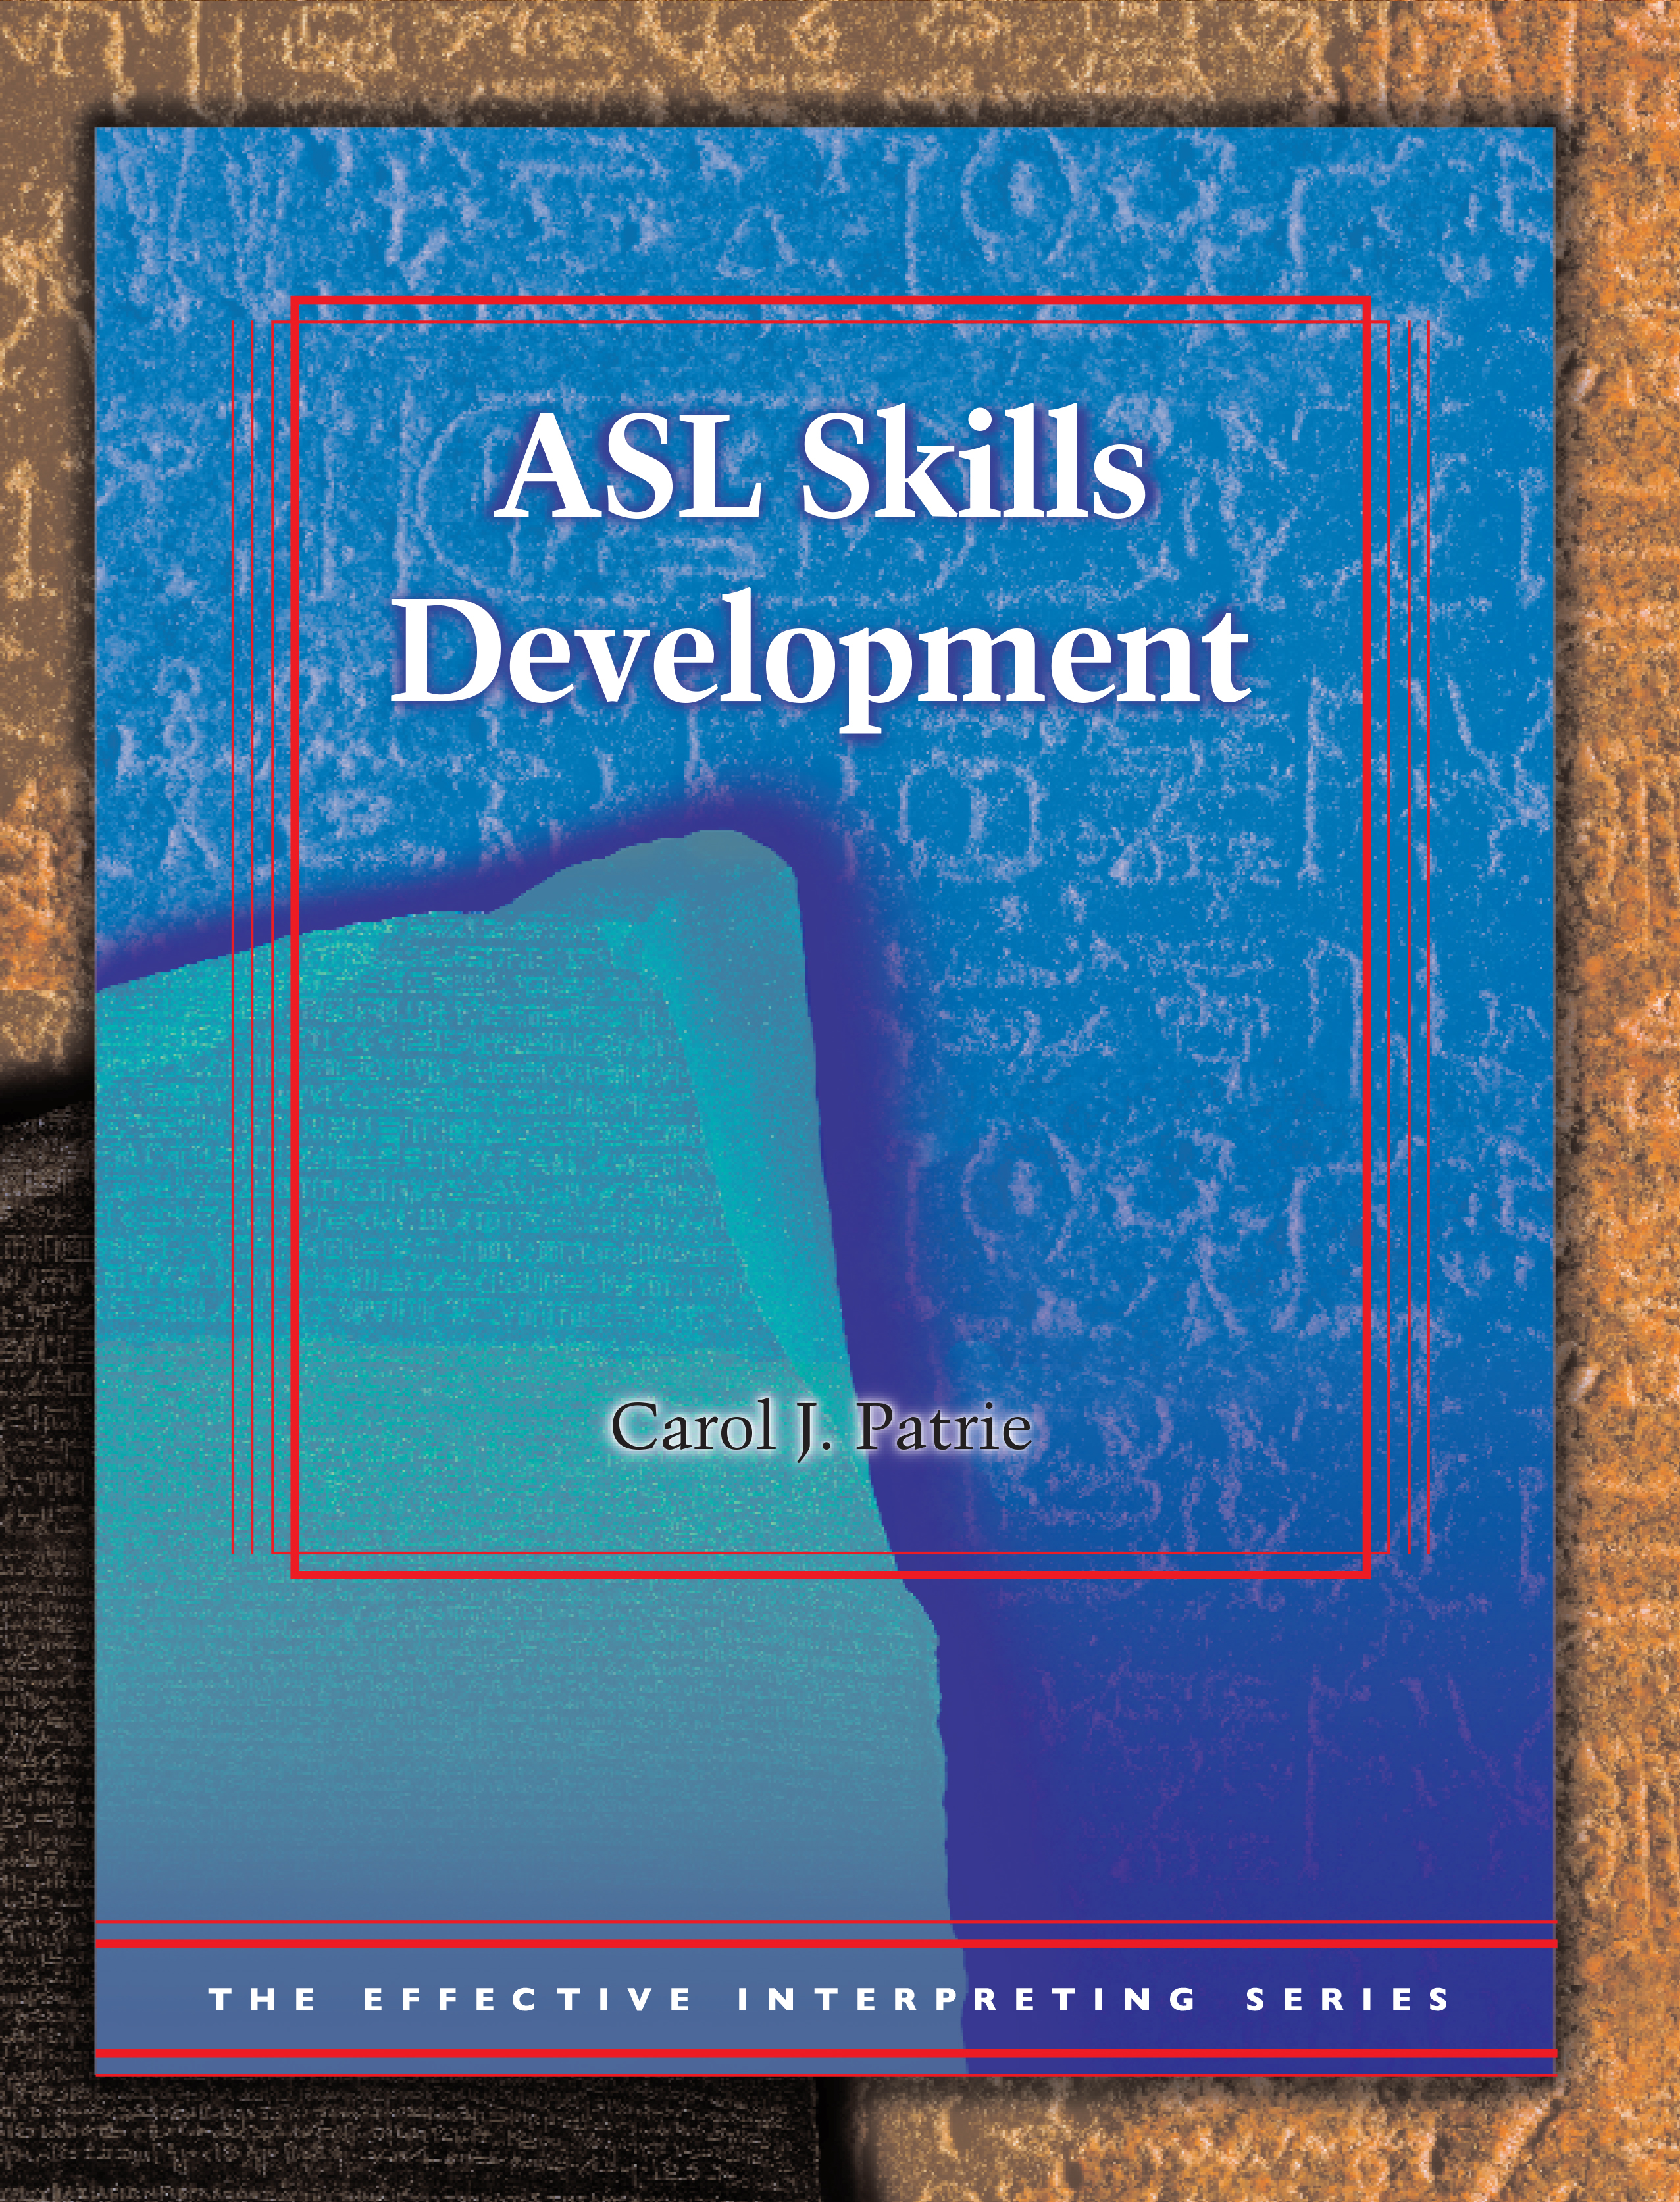 ASL Skills Development